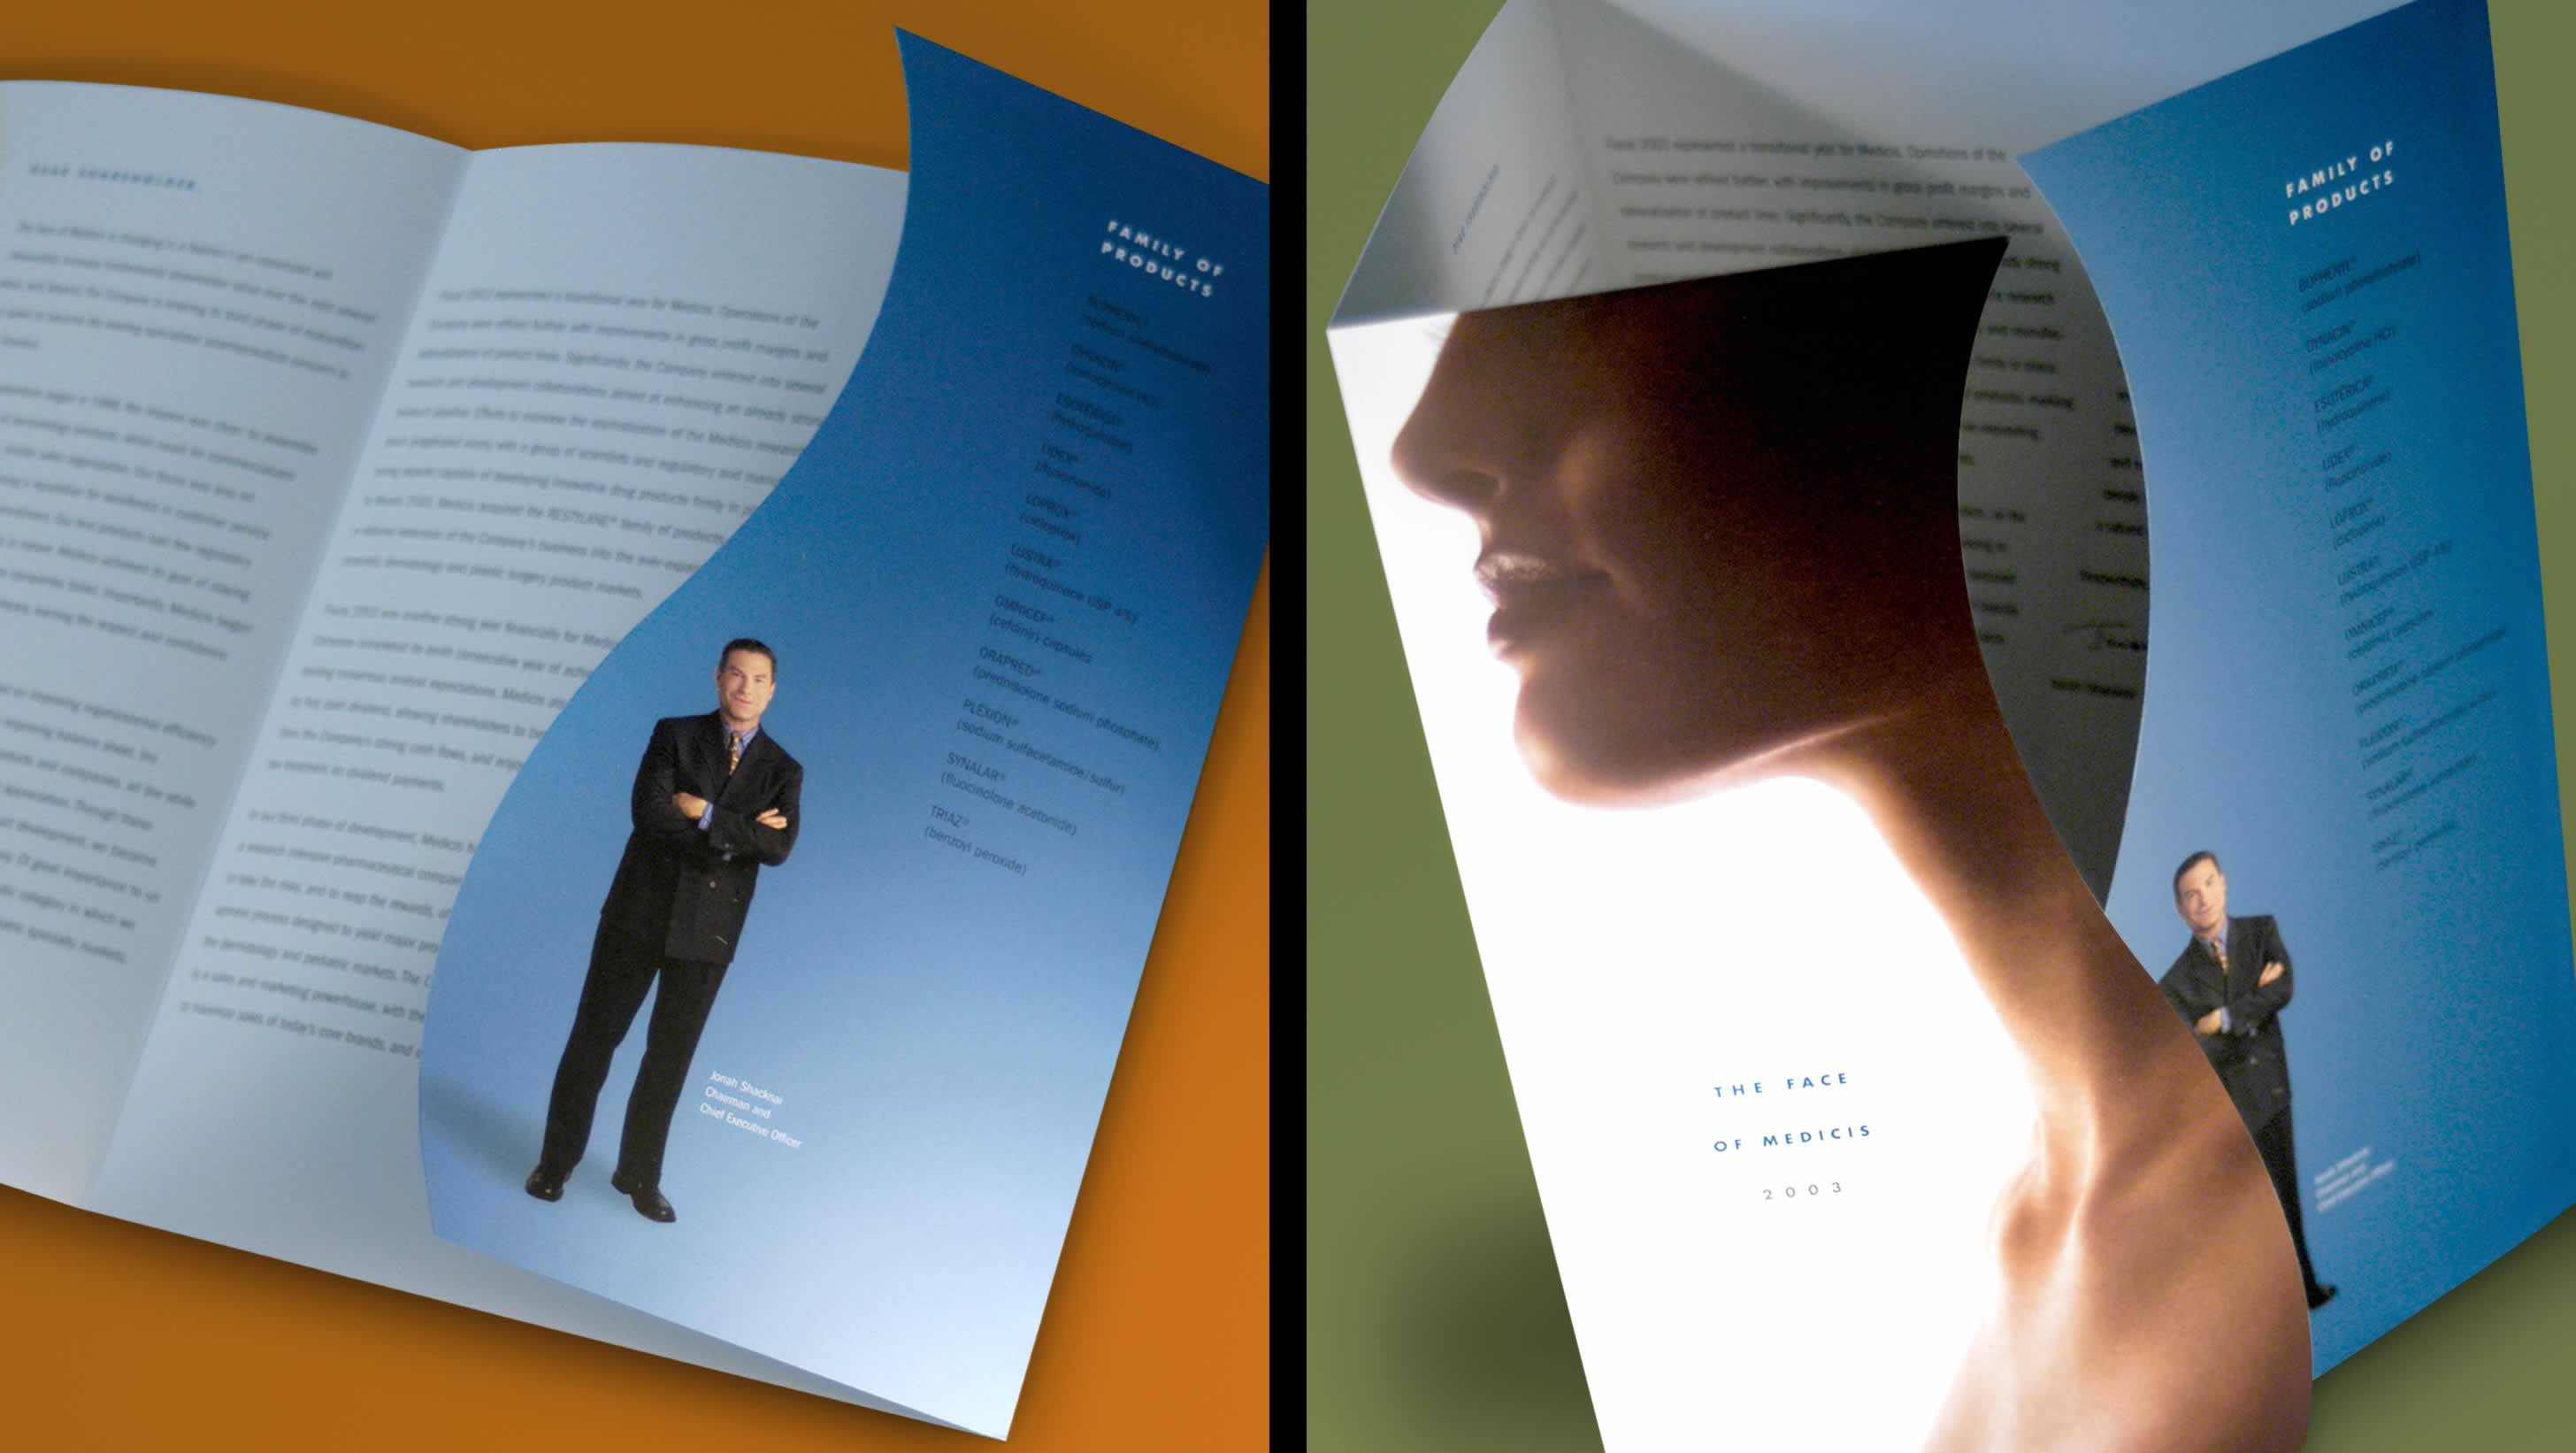 Health and Wellness Industry Annual Report Design